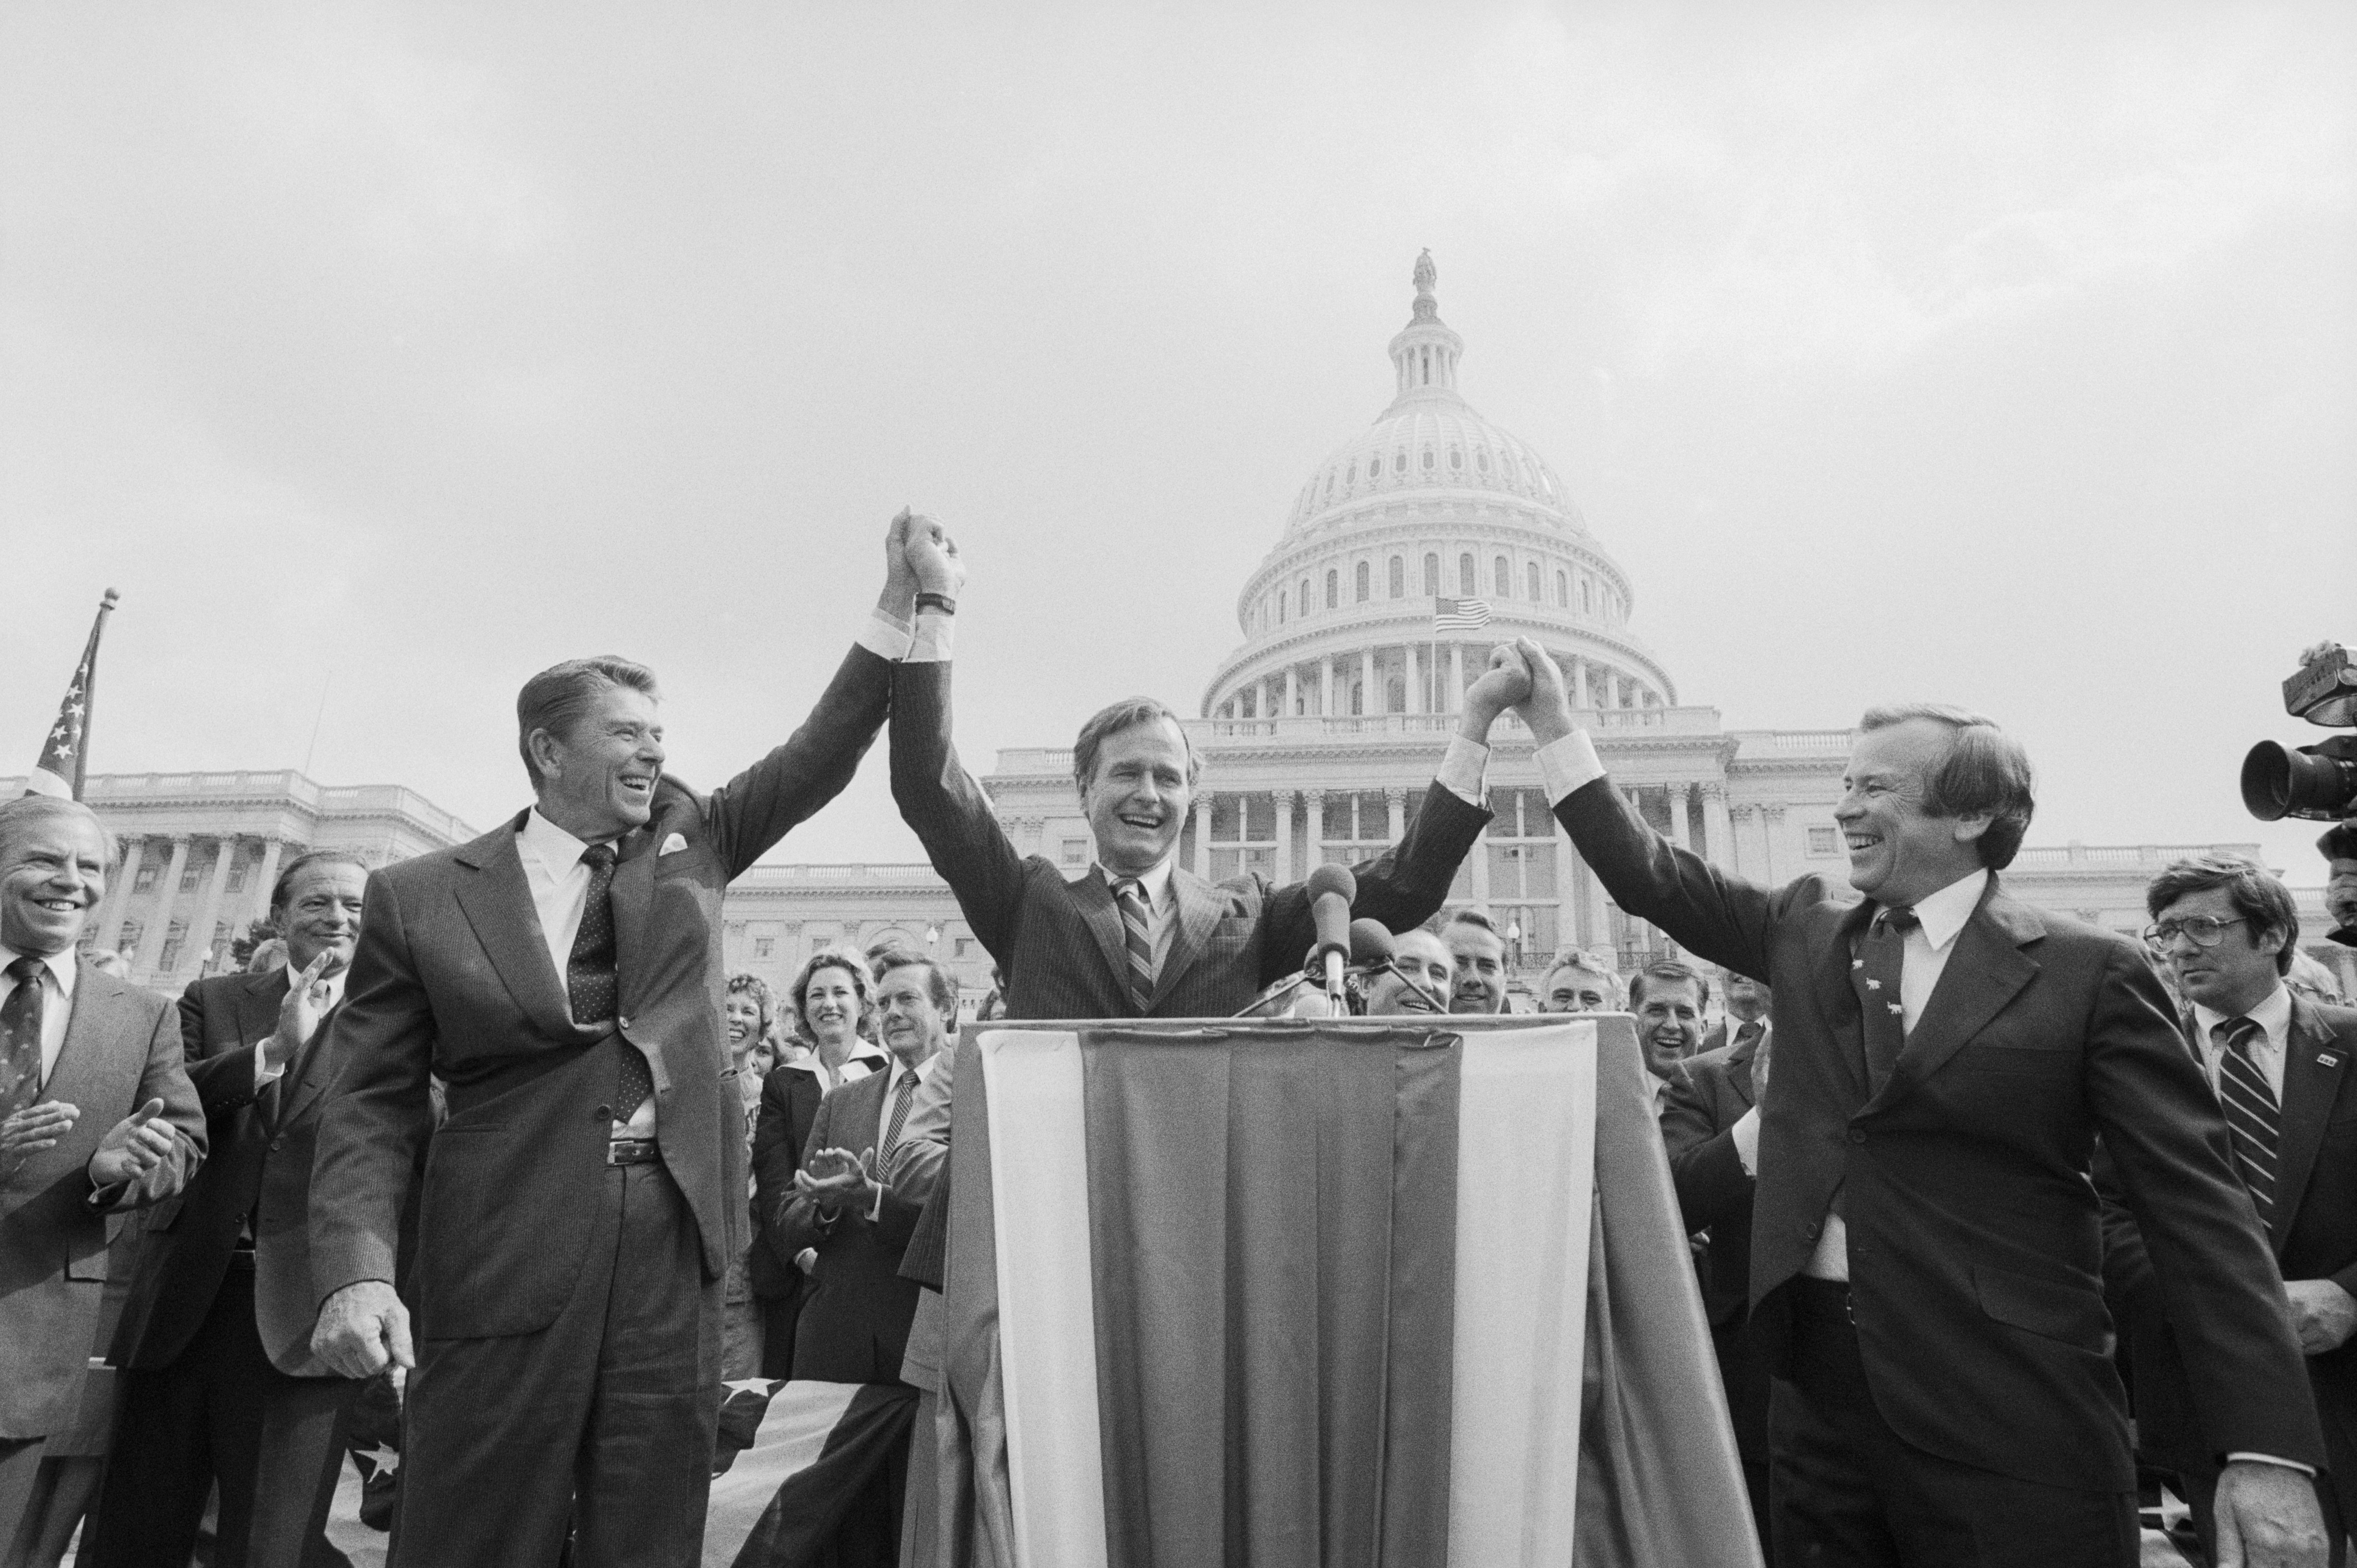 Reagan would prove to be the more popular conservative candidate in the race for the Presidency and would eventually gain the Republican nomination, but in a surprising turn of events, Reagan would pick Bush to be his vice presidential nominee. Here, the two candidates join Senate Majority leader Howard Baker for a rally on Capitol Hill in September 1980.